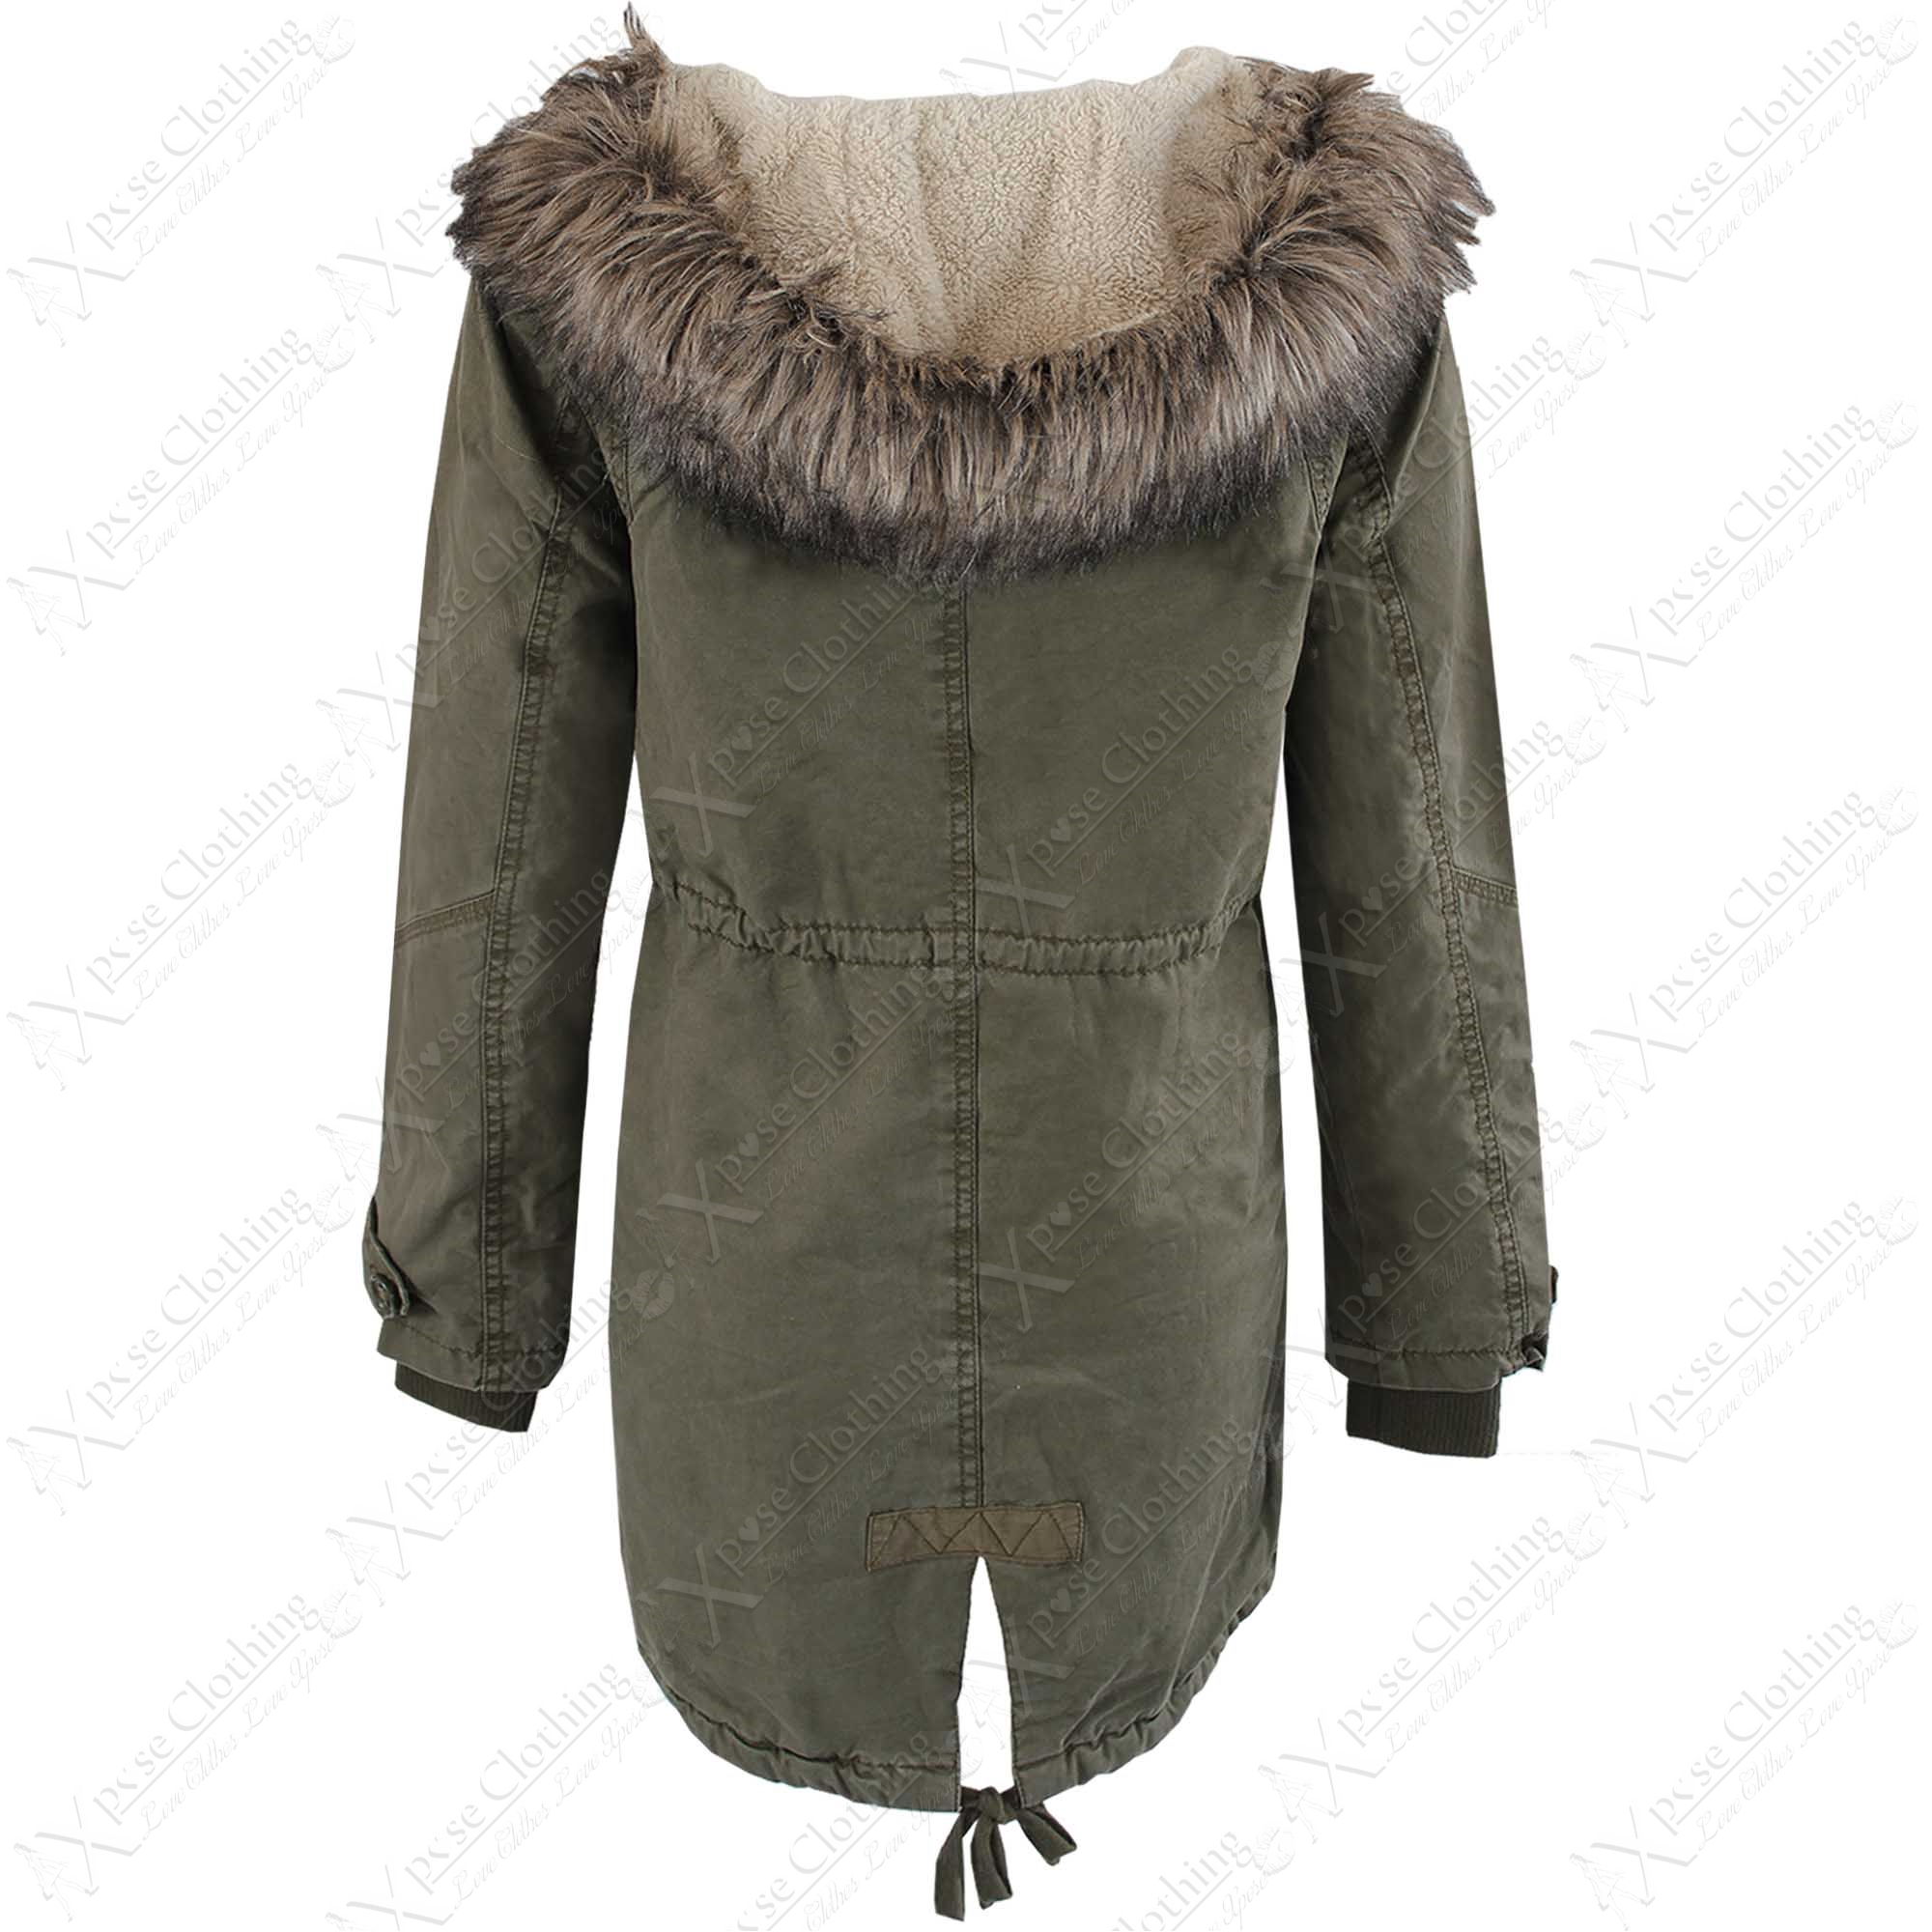 NEW WOMENS FULL BORG LINED PARKA LADIES FUR HOOD JACKET WARM COAT